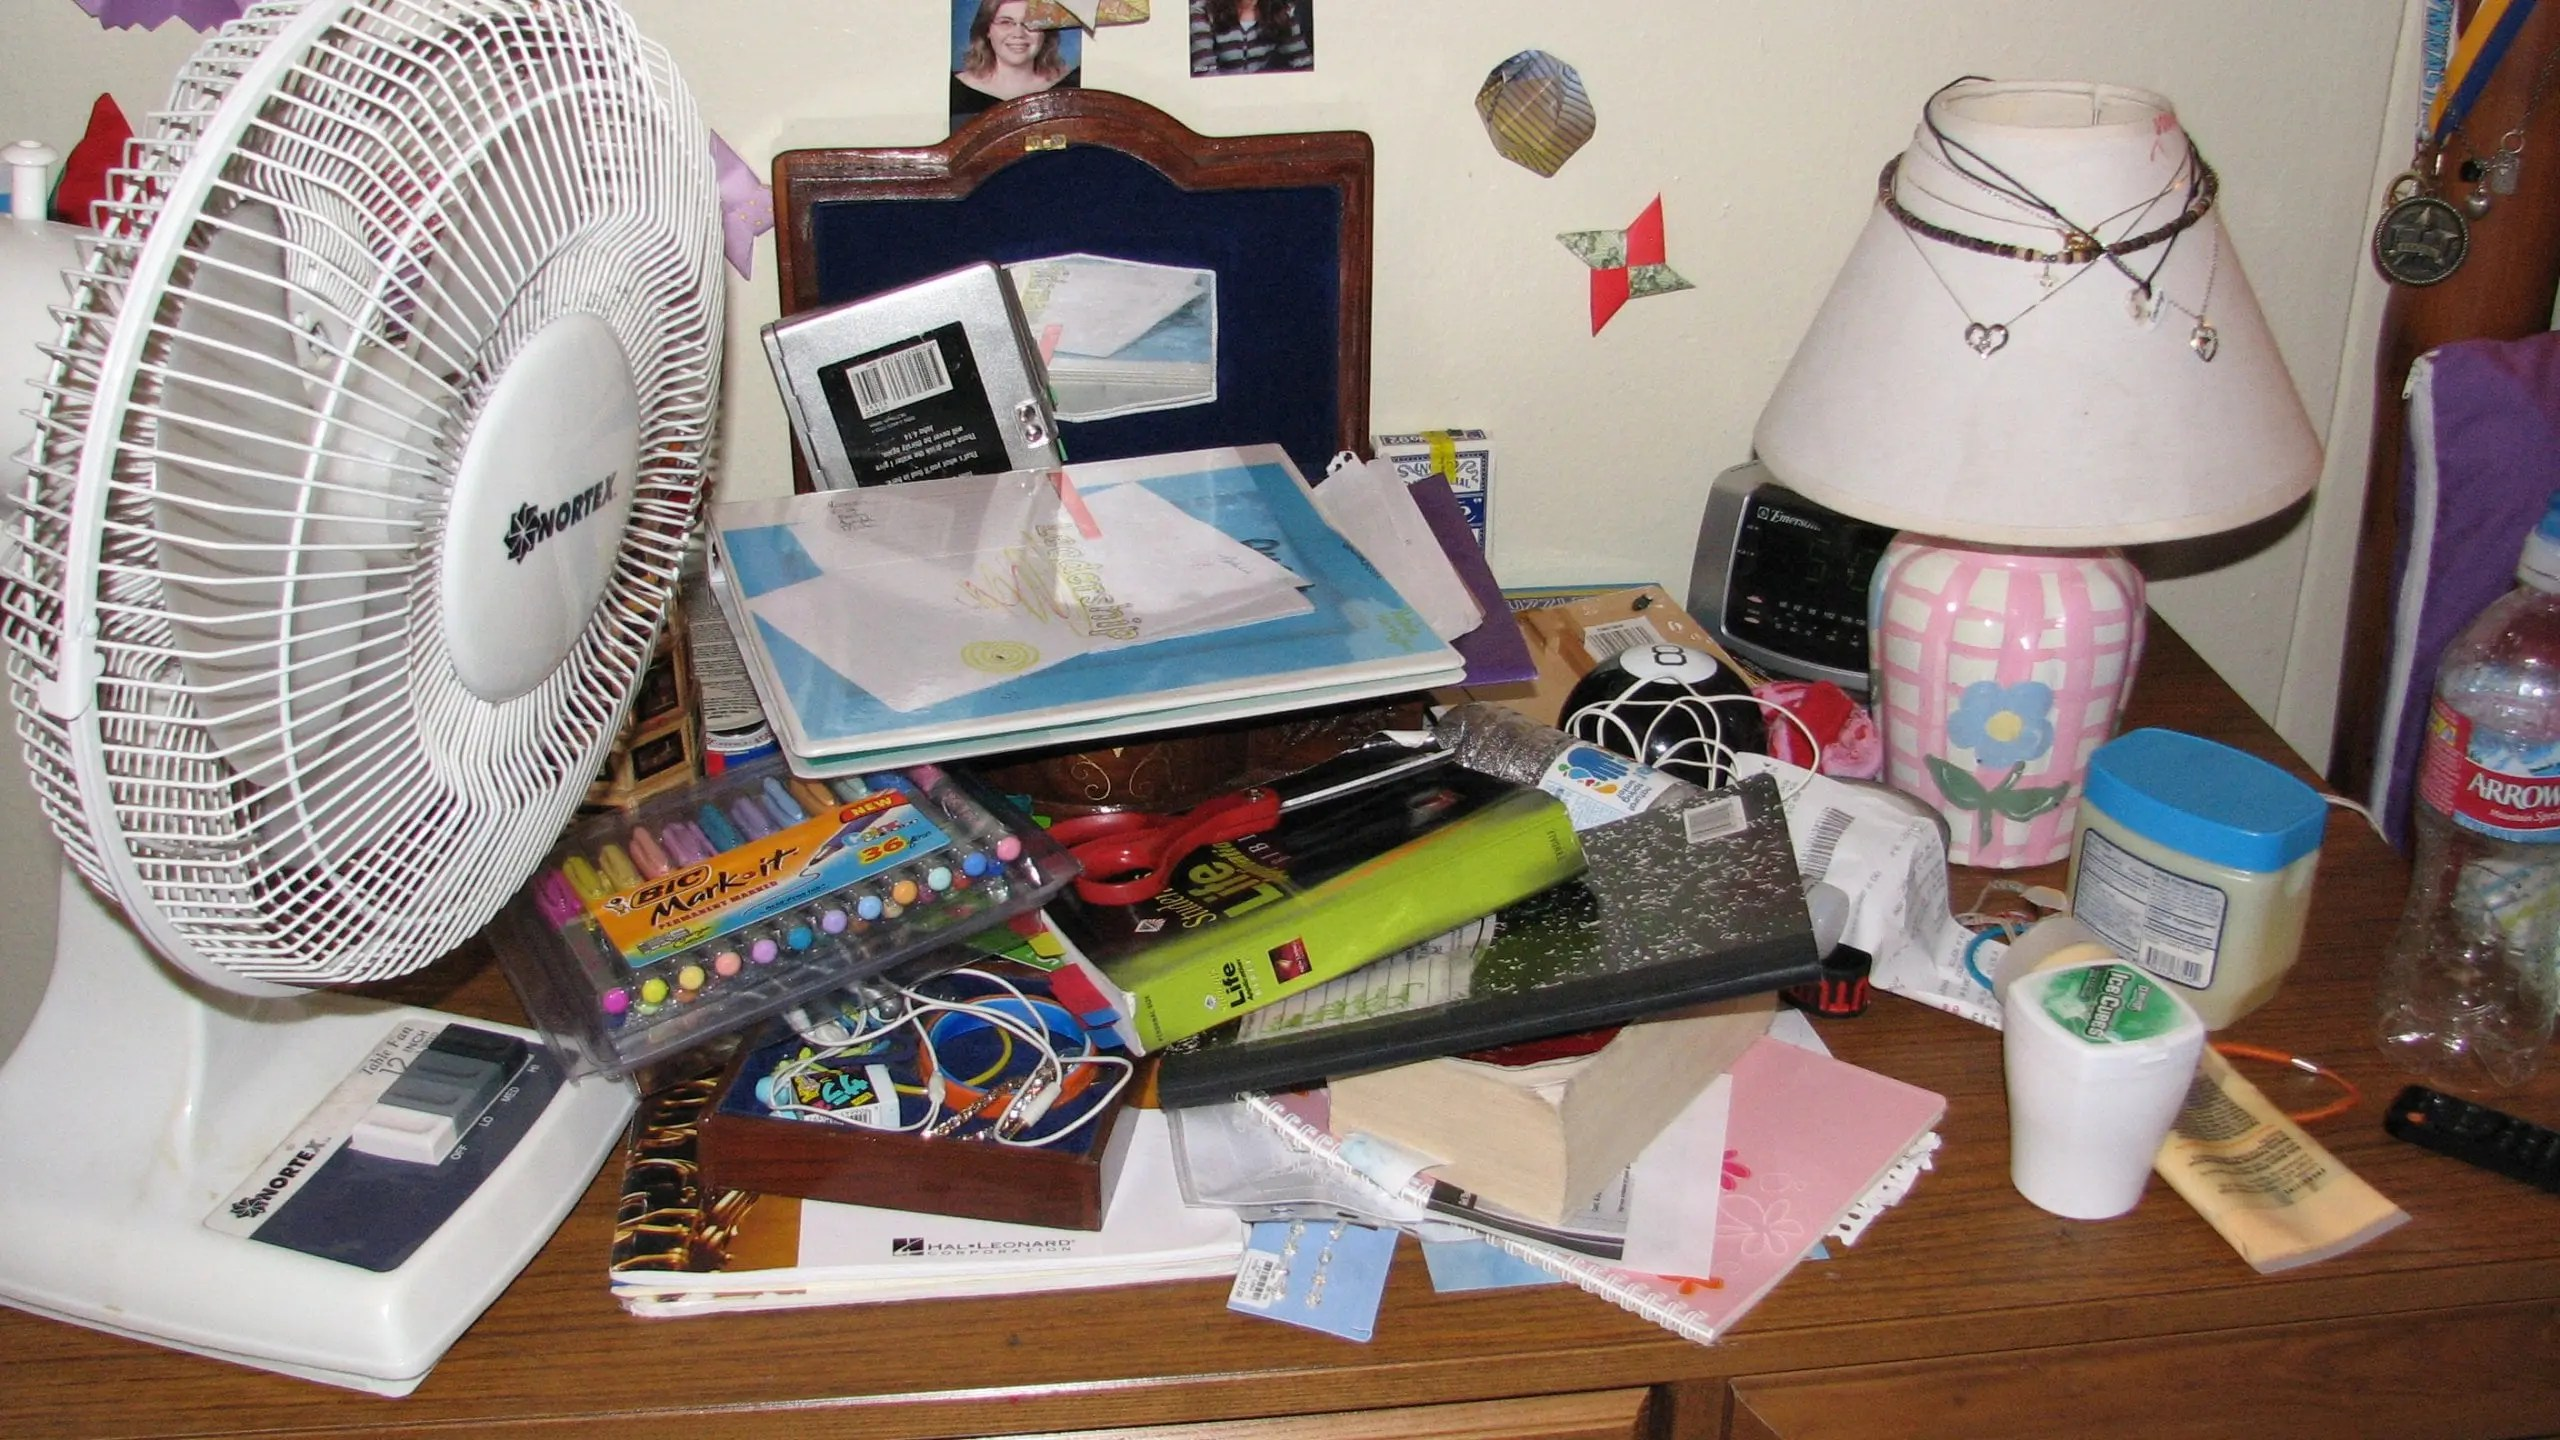 The Messy Desk  Ginger Harrington